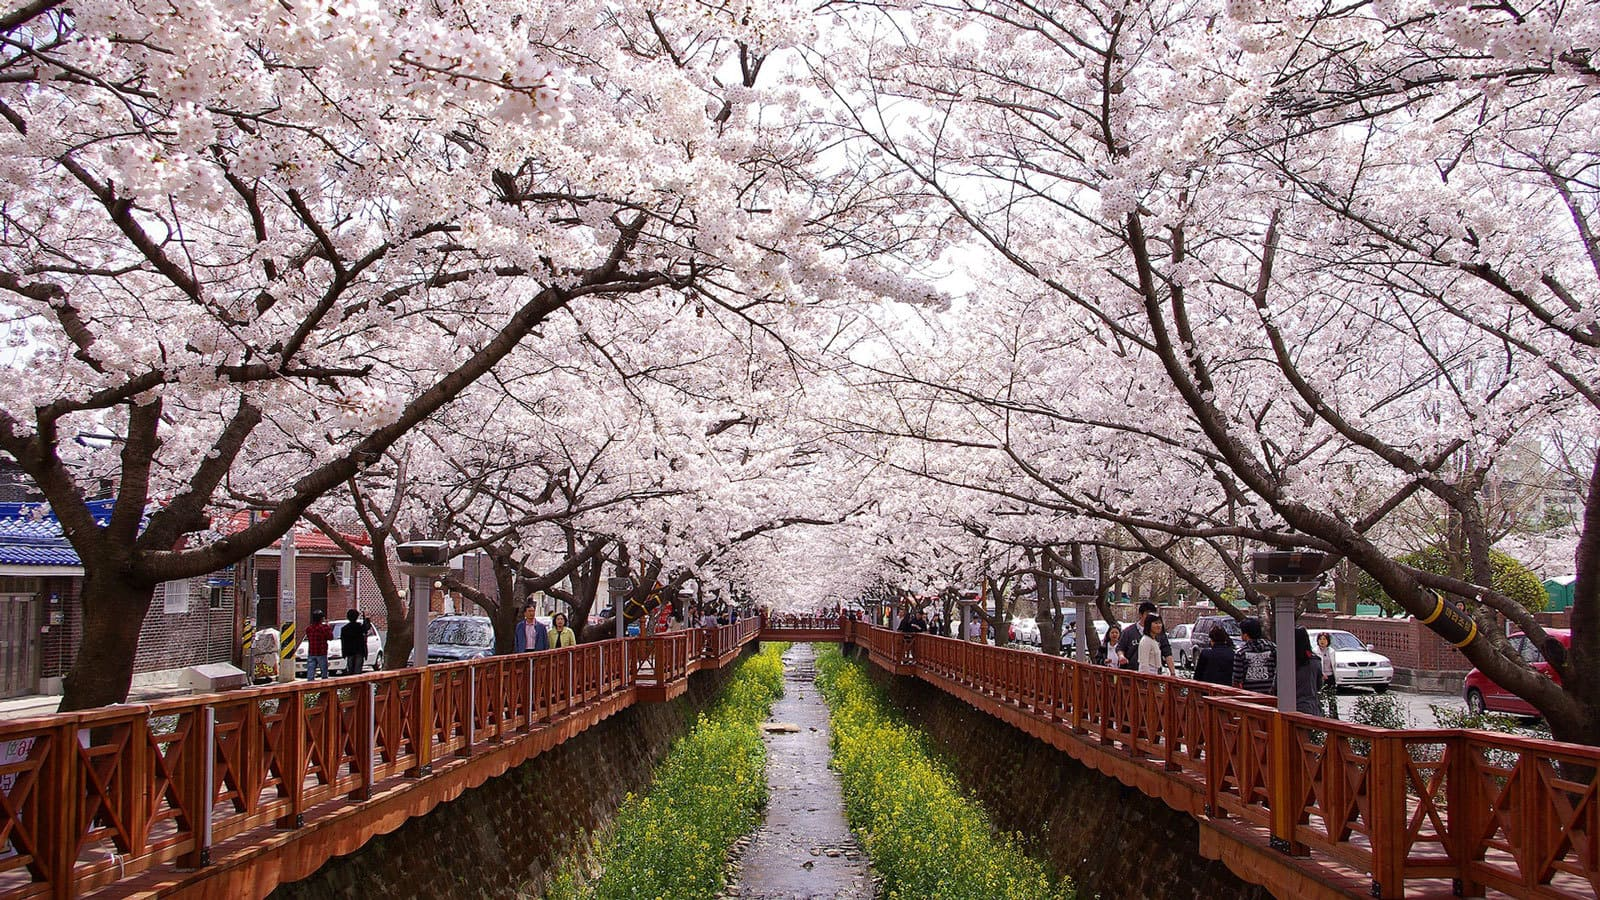 Fall Turkey Wallpaper Seeing Cherry Blossoms In Korea One Spring Day In Jinhae